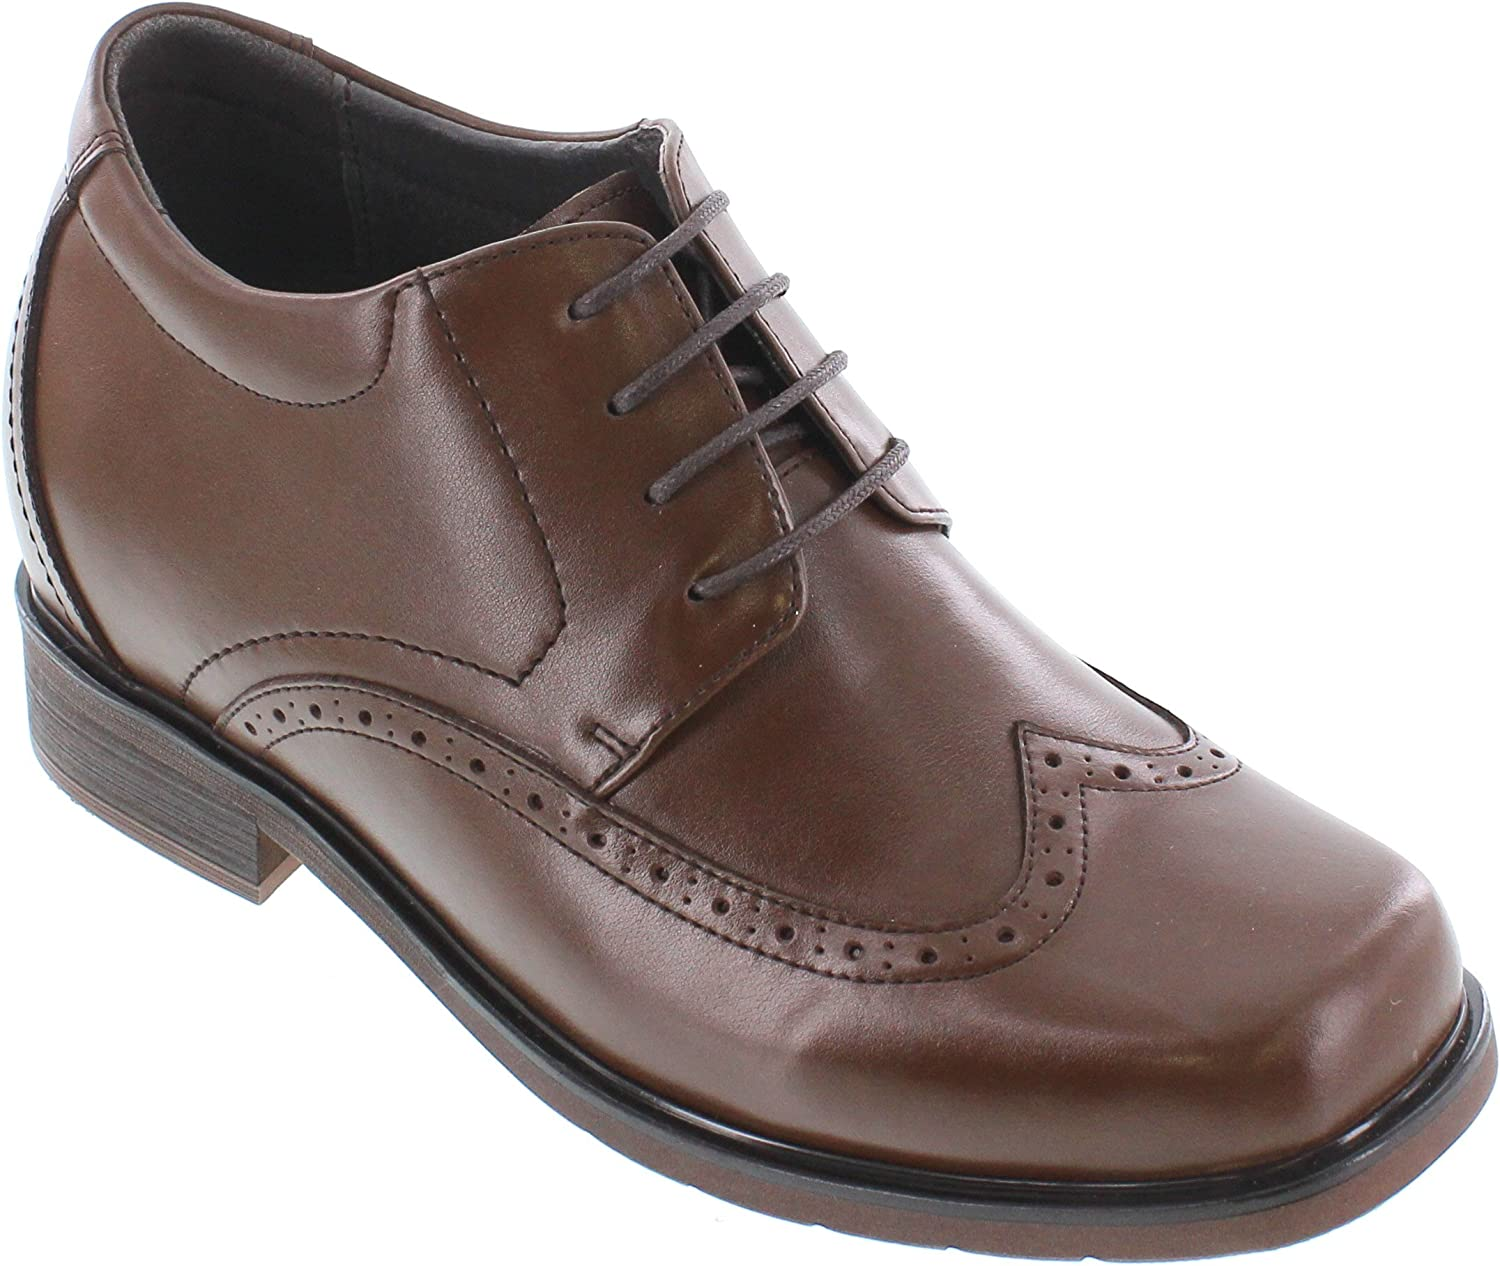 CALTO Men's Invisible Height Increasing Elevator Shoes - Dark Brown Premium Leather Wing-tip Lace-up Casual Derby Oxfords - 3.2 Inches Taller - T52710